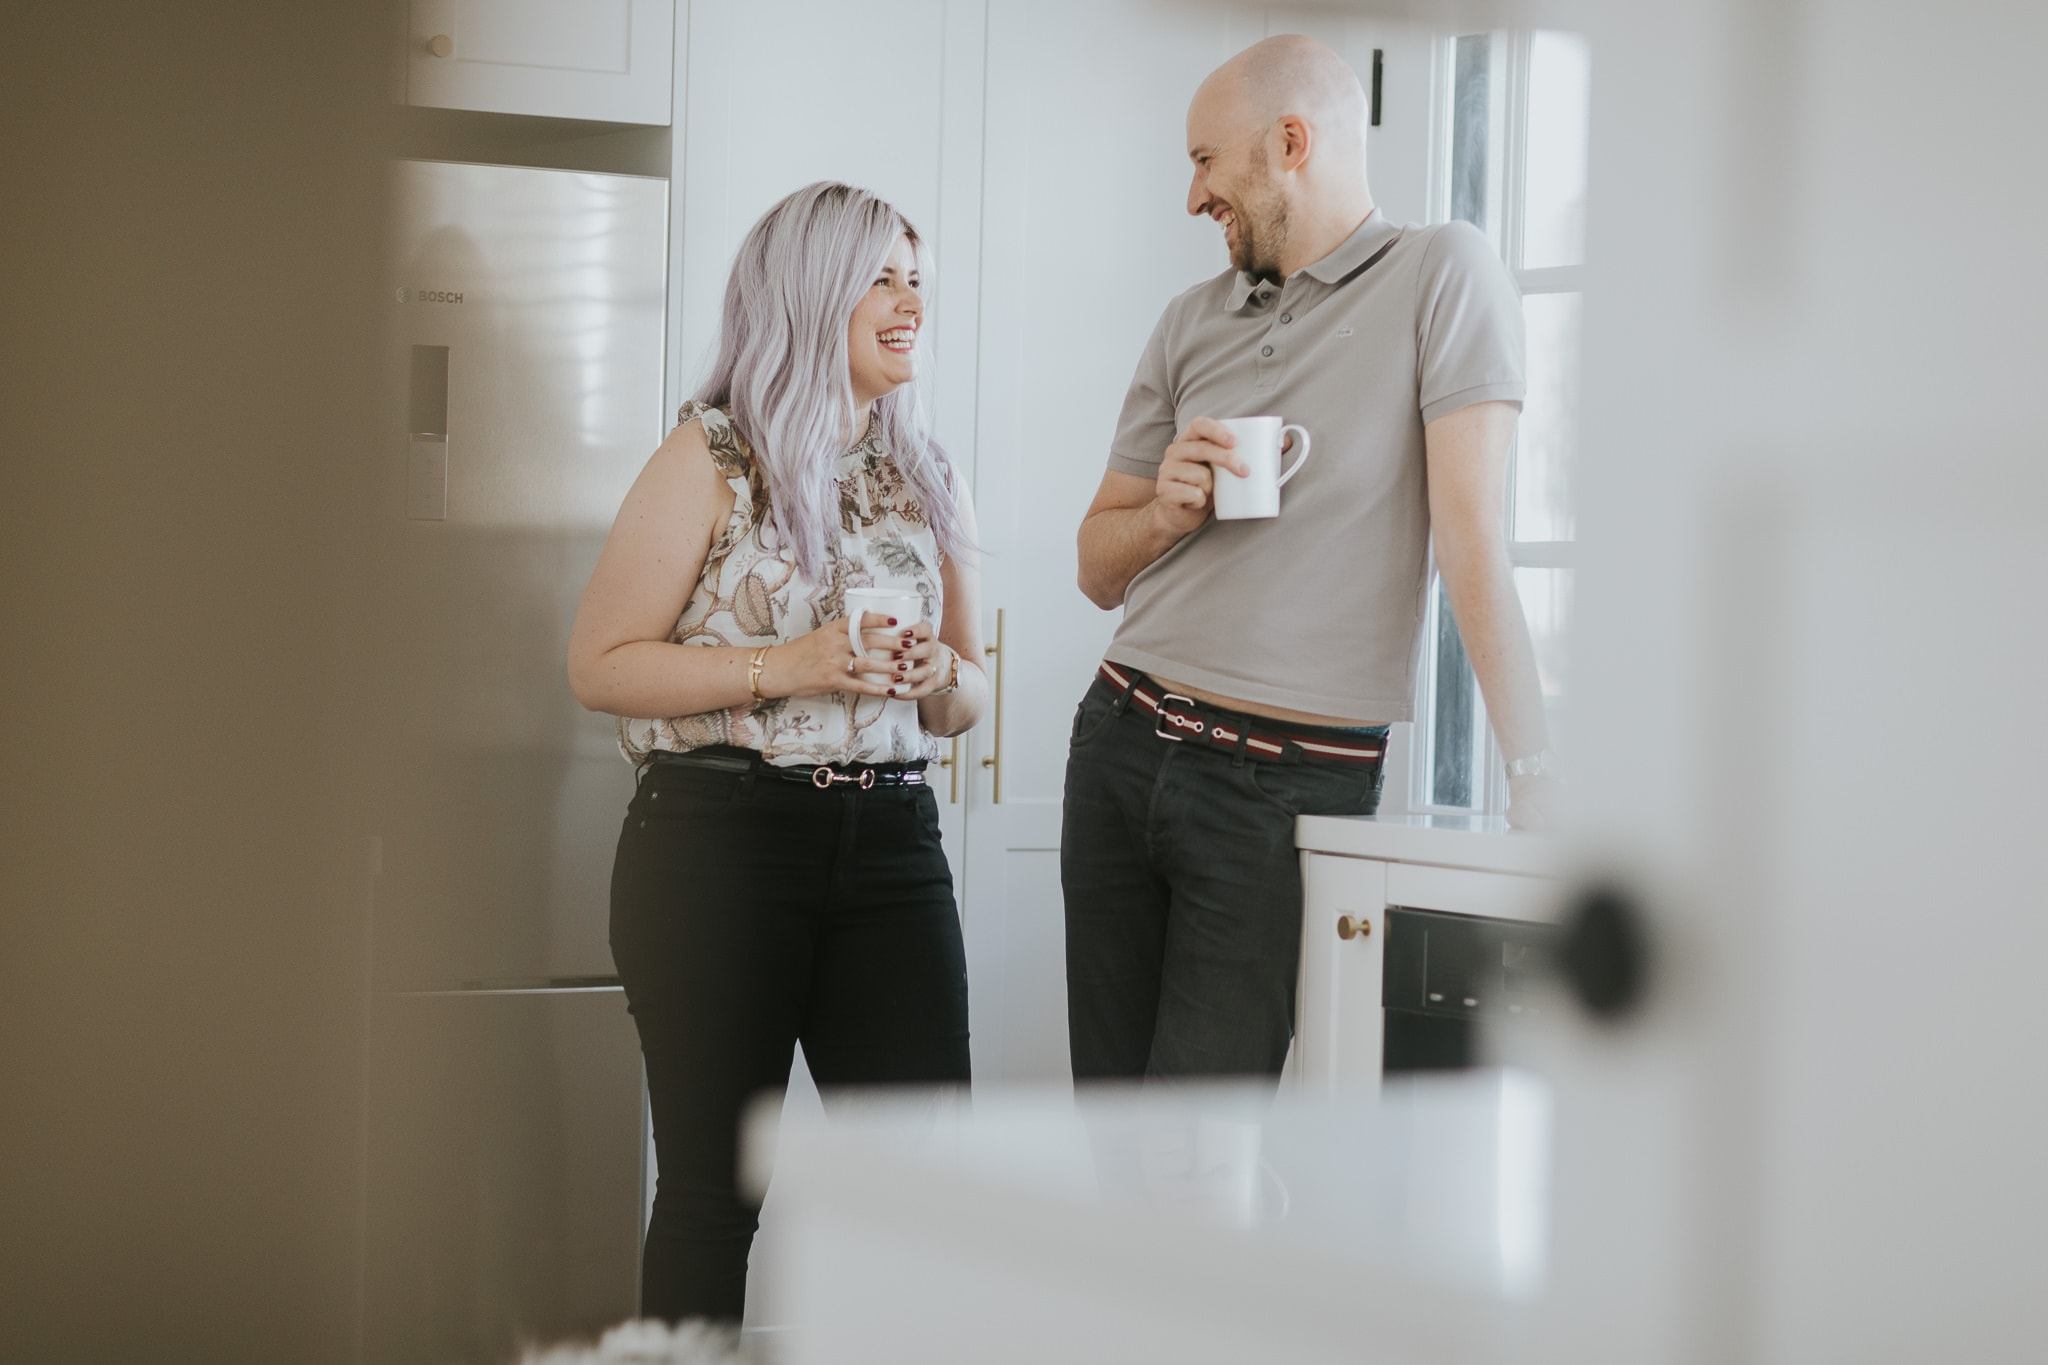 couples photography - have a cup of coffee and have fun